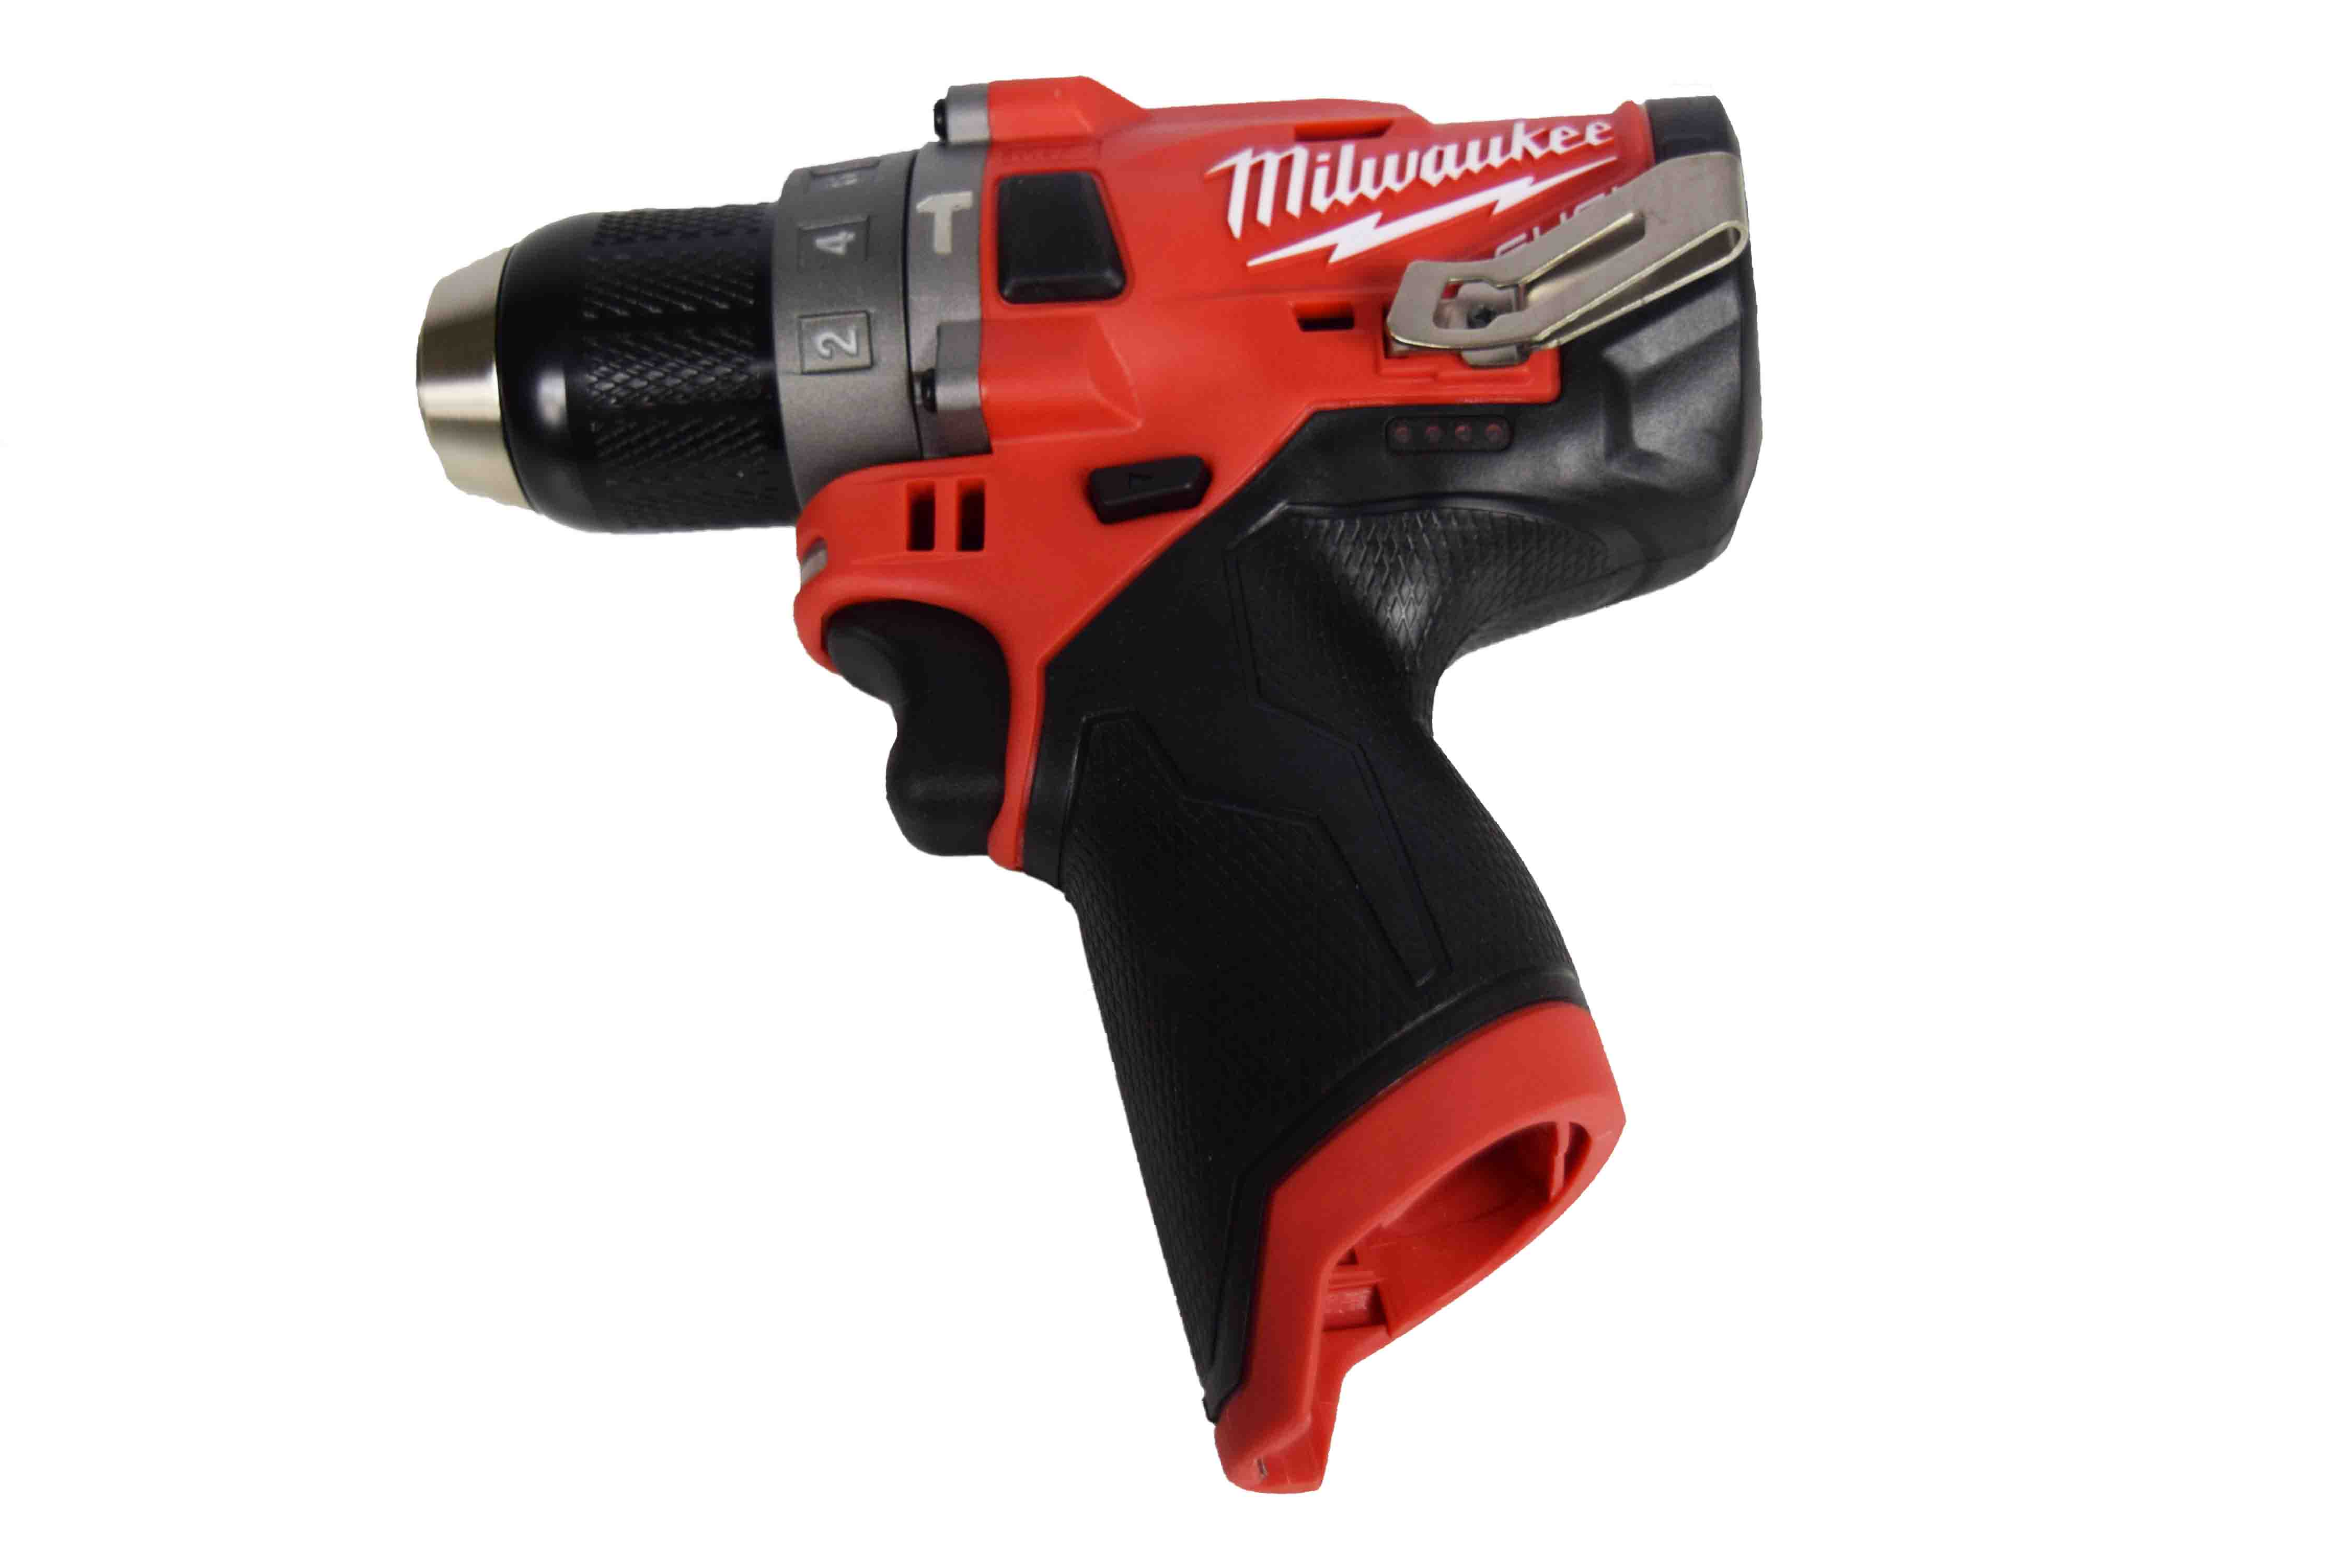 Milwaukee-2504-20-M12-Fuel-12-volt-Brushless-1-2-In.-Hammer-Drill-tool-only-image-3